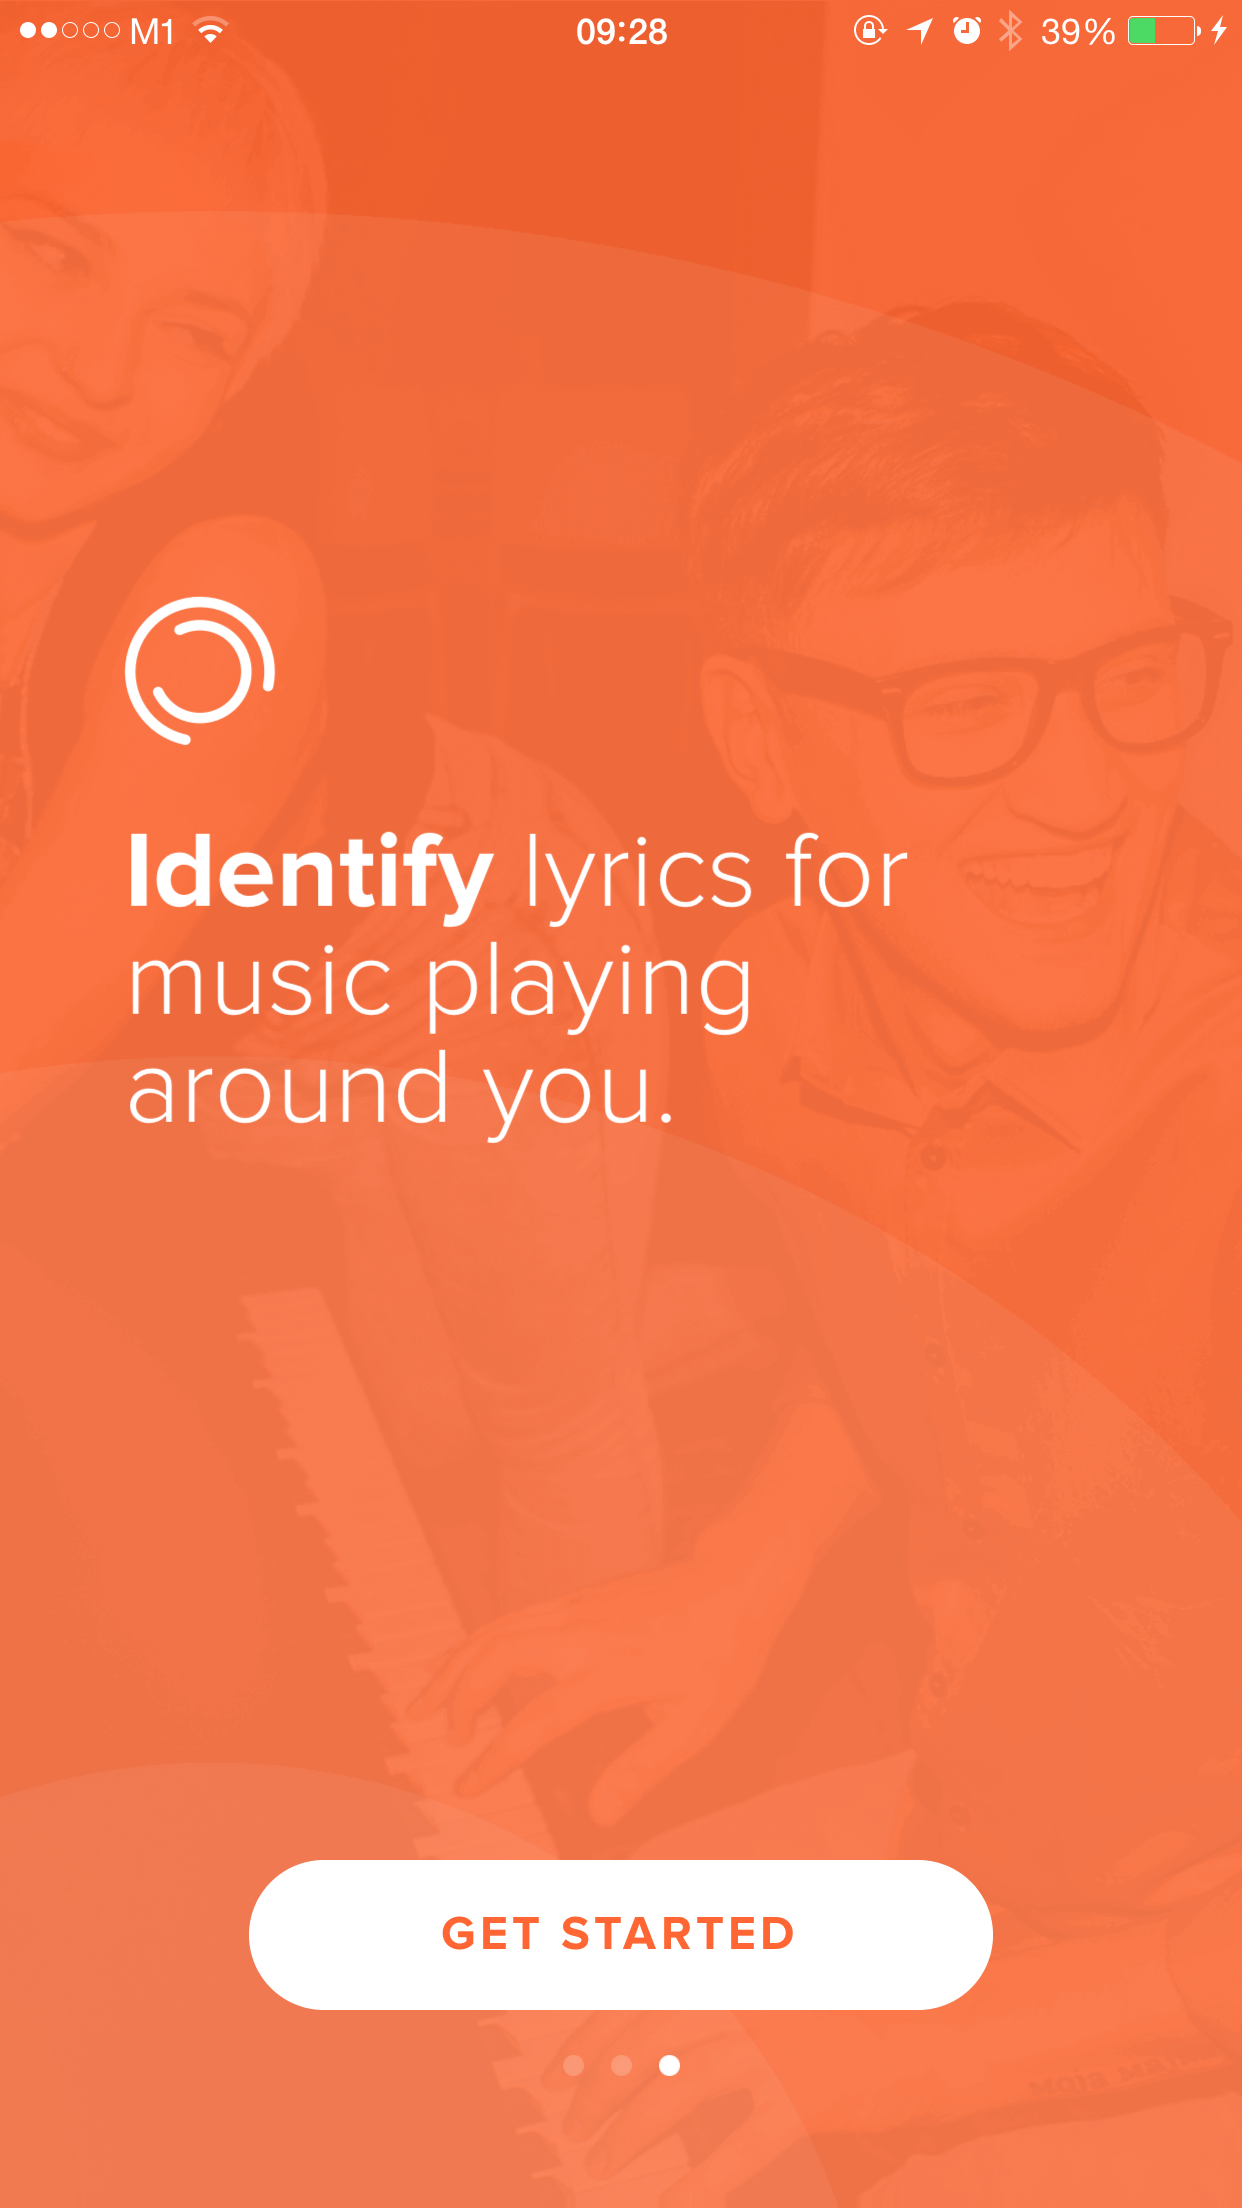 Pin by LauraC on App Screens Lyrics, Get started, Music